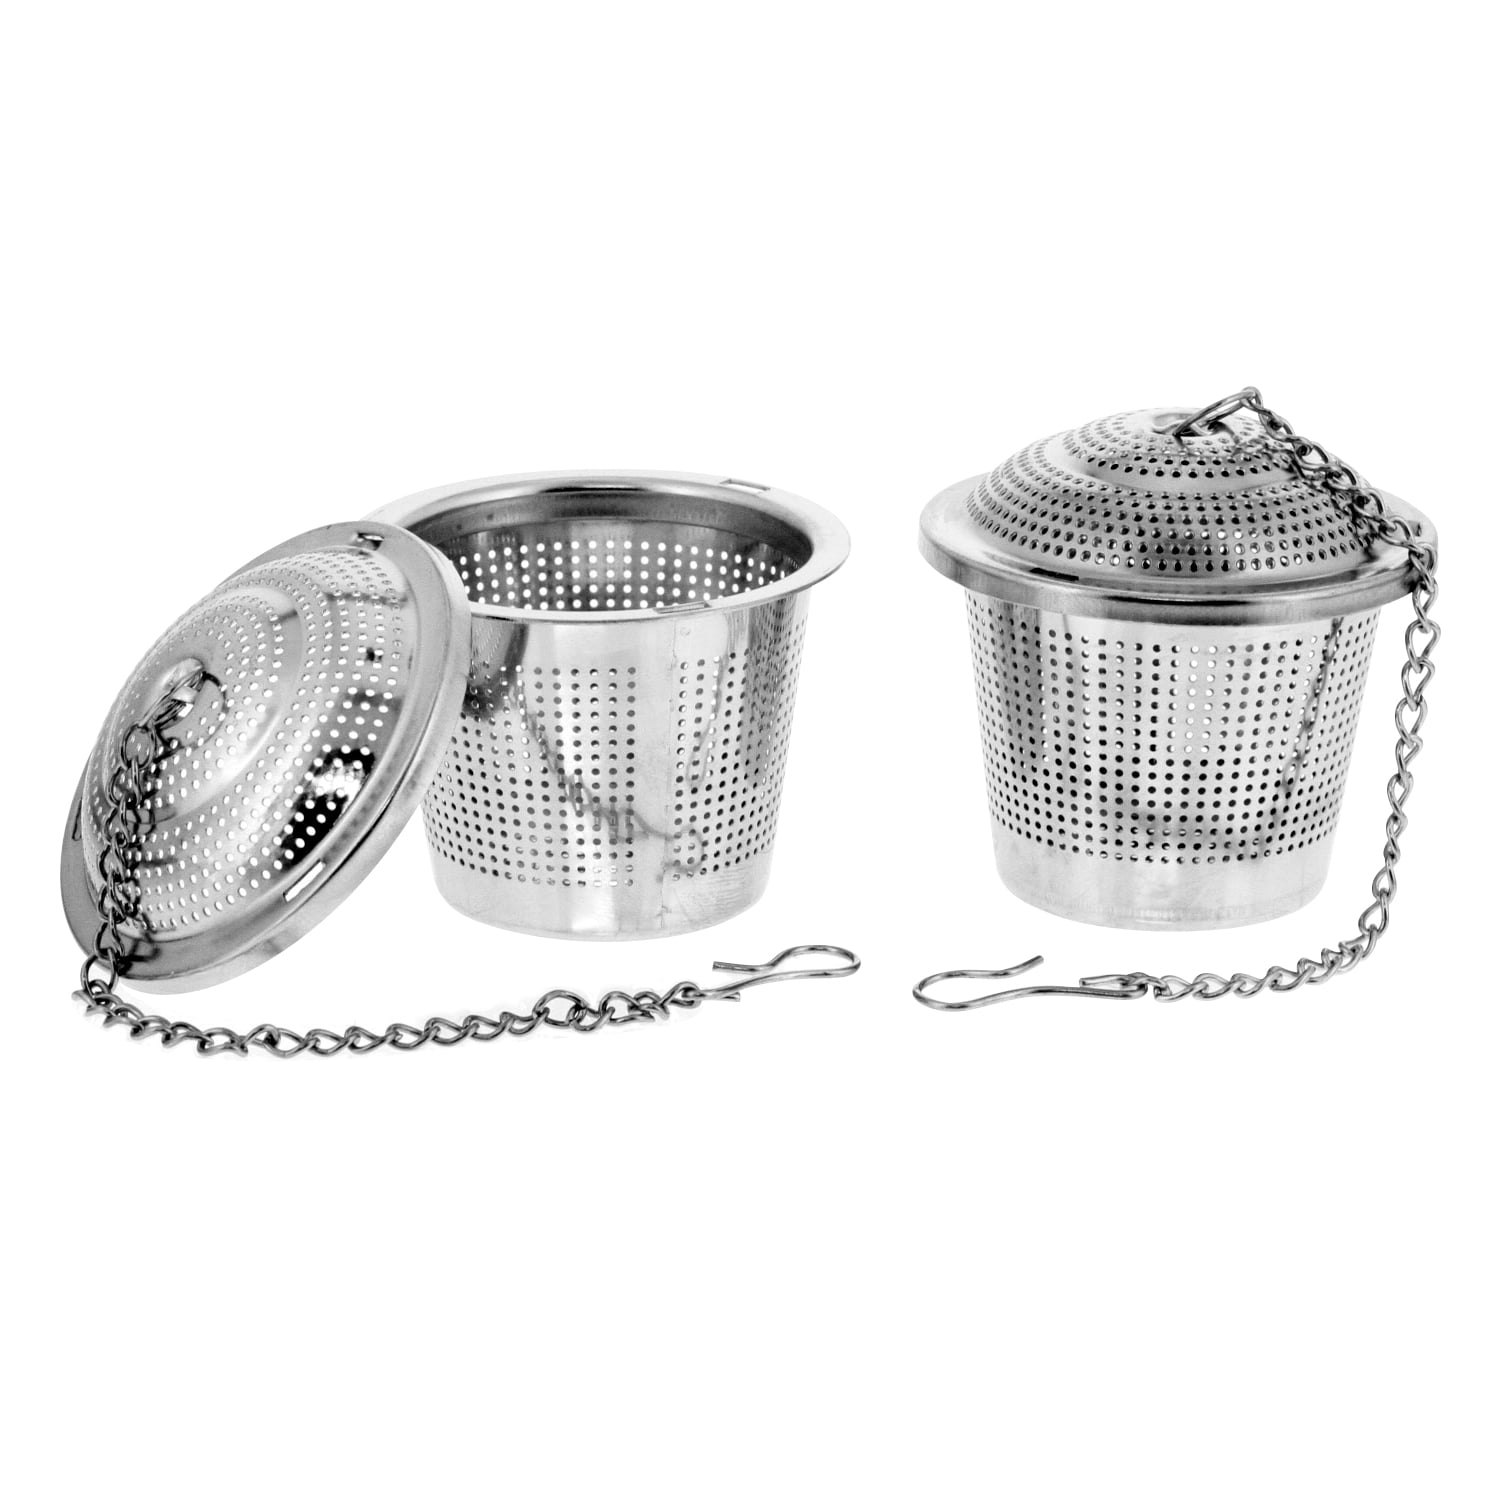 Easy to Clean Tea Steeper Baskets Safe Silver Easy to Use Transer Stainless steel Tea Infuser Tea Strainers Small Teapot for Steeping Loose Leaf Tea